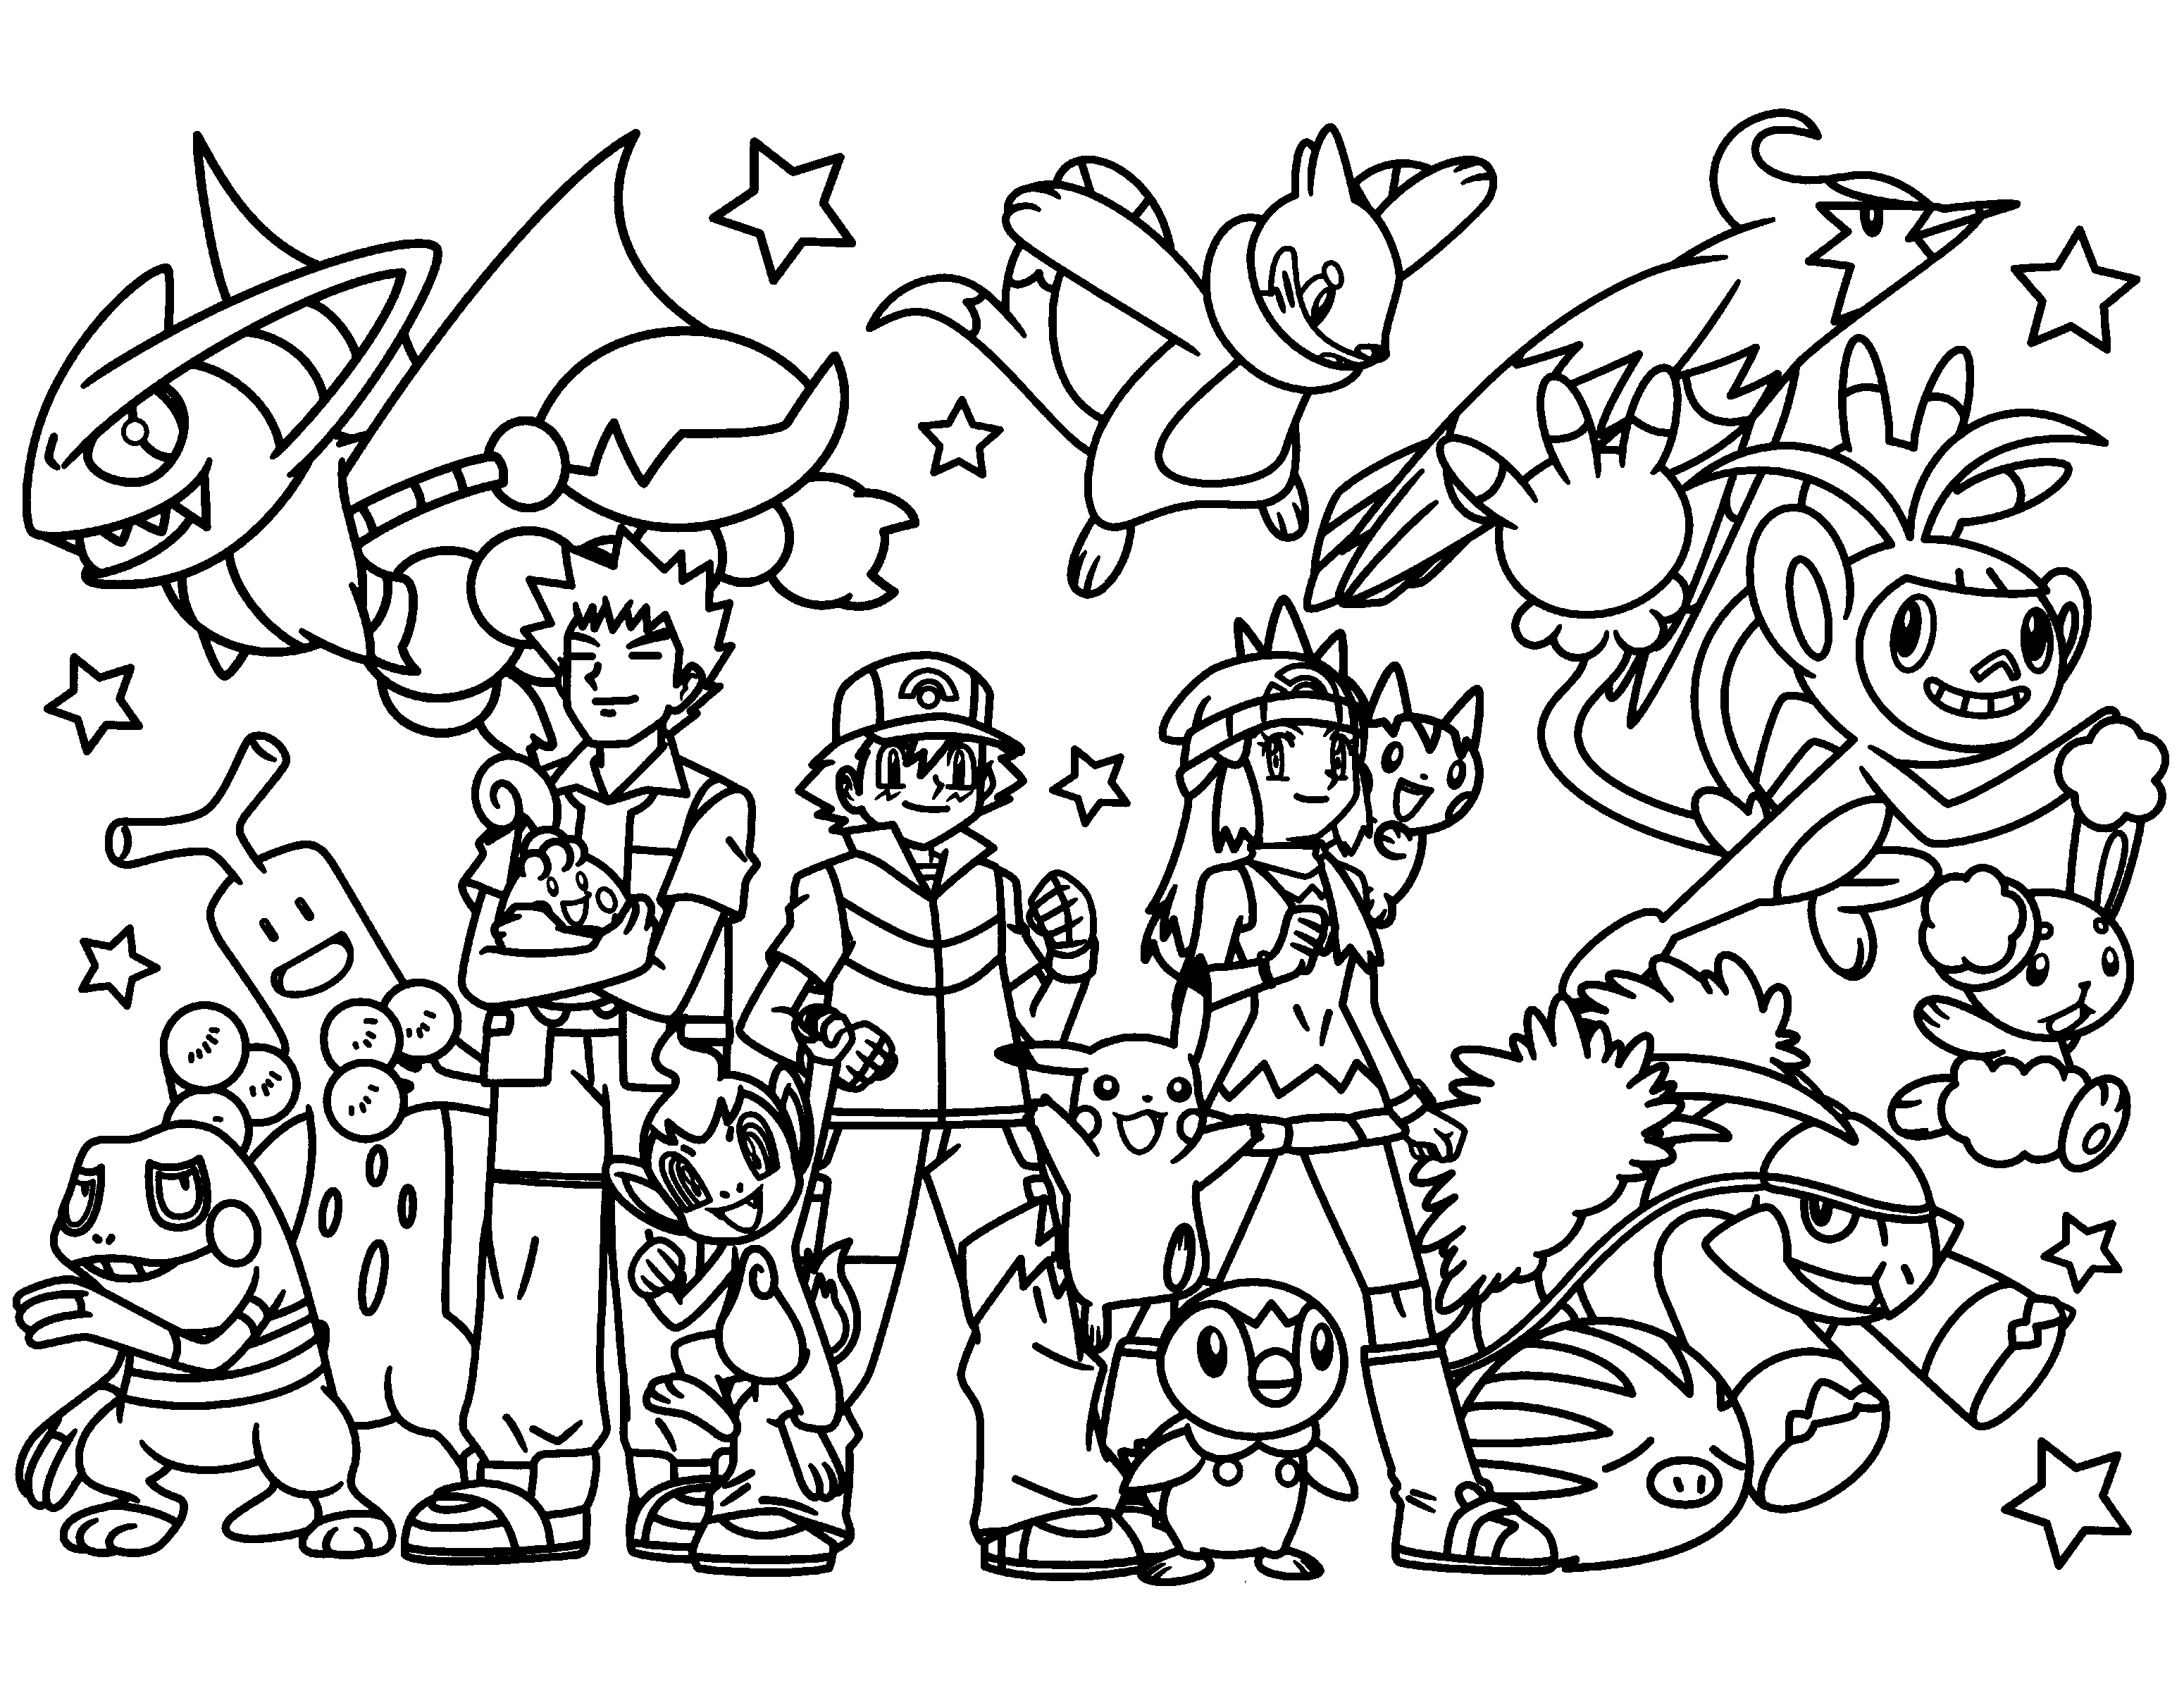 pokemon coloring pages for kids printable pokemon coloring pages join your favorite pokemon on an pages pokemon coloring for printable kids